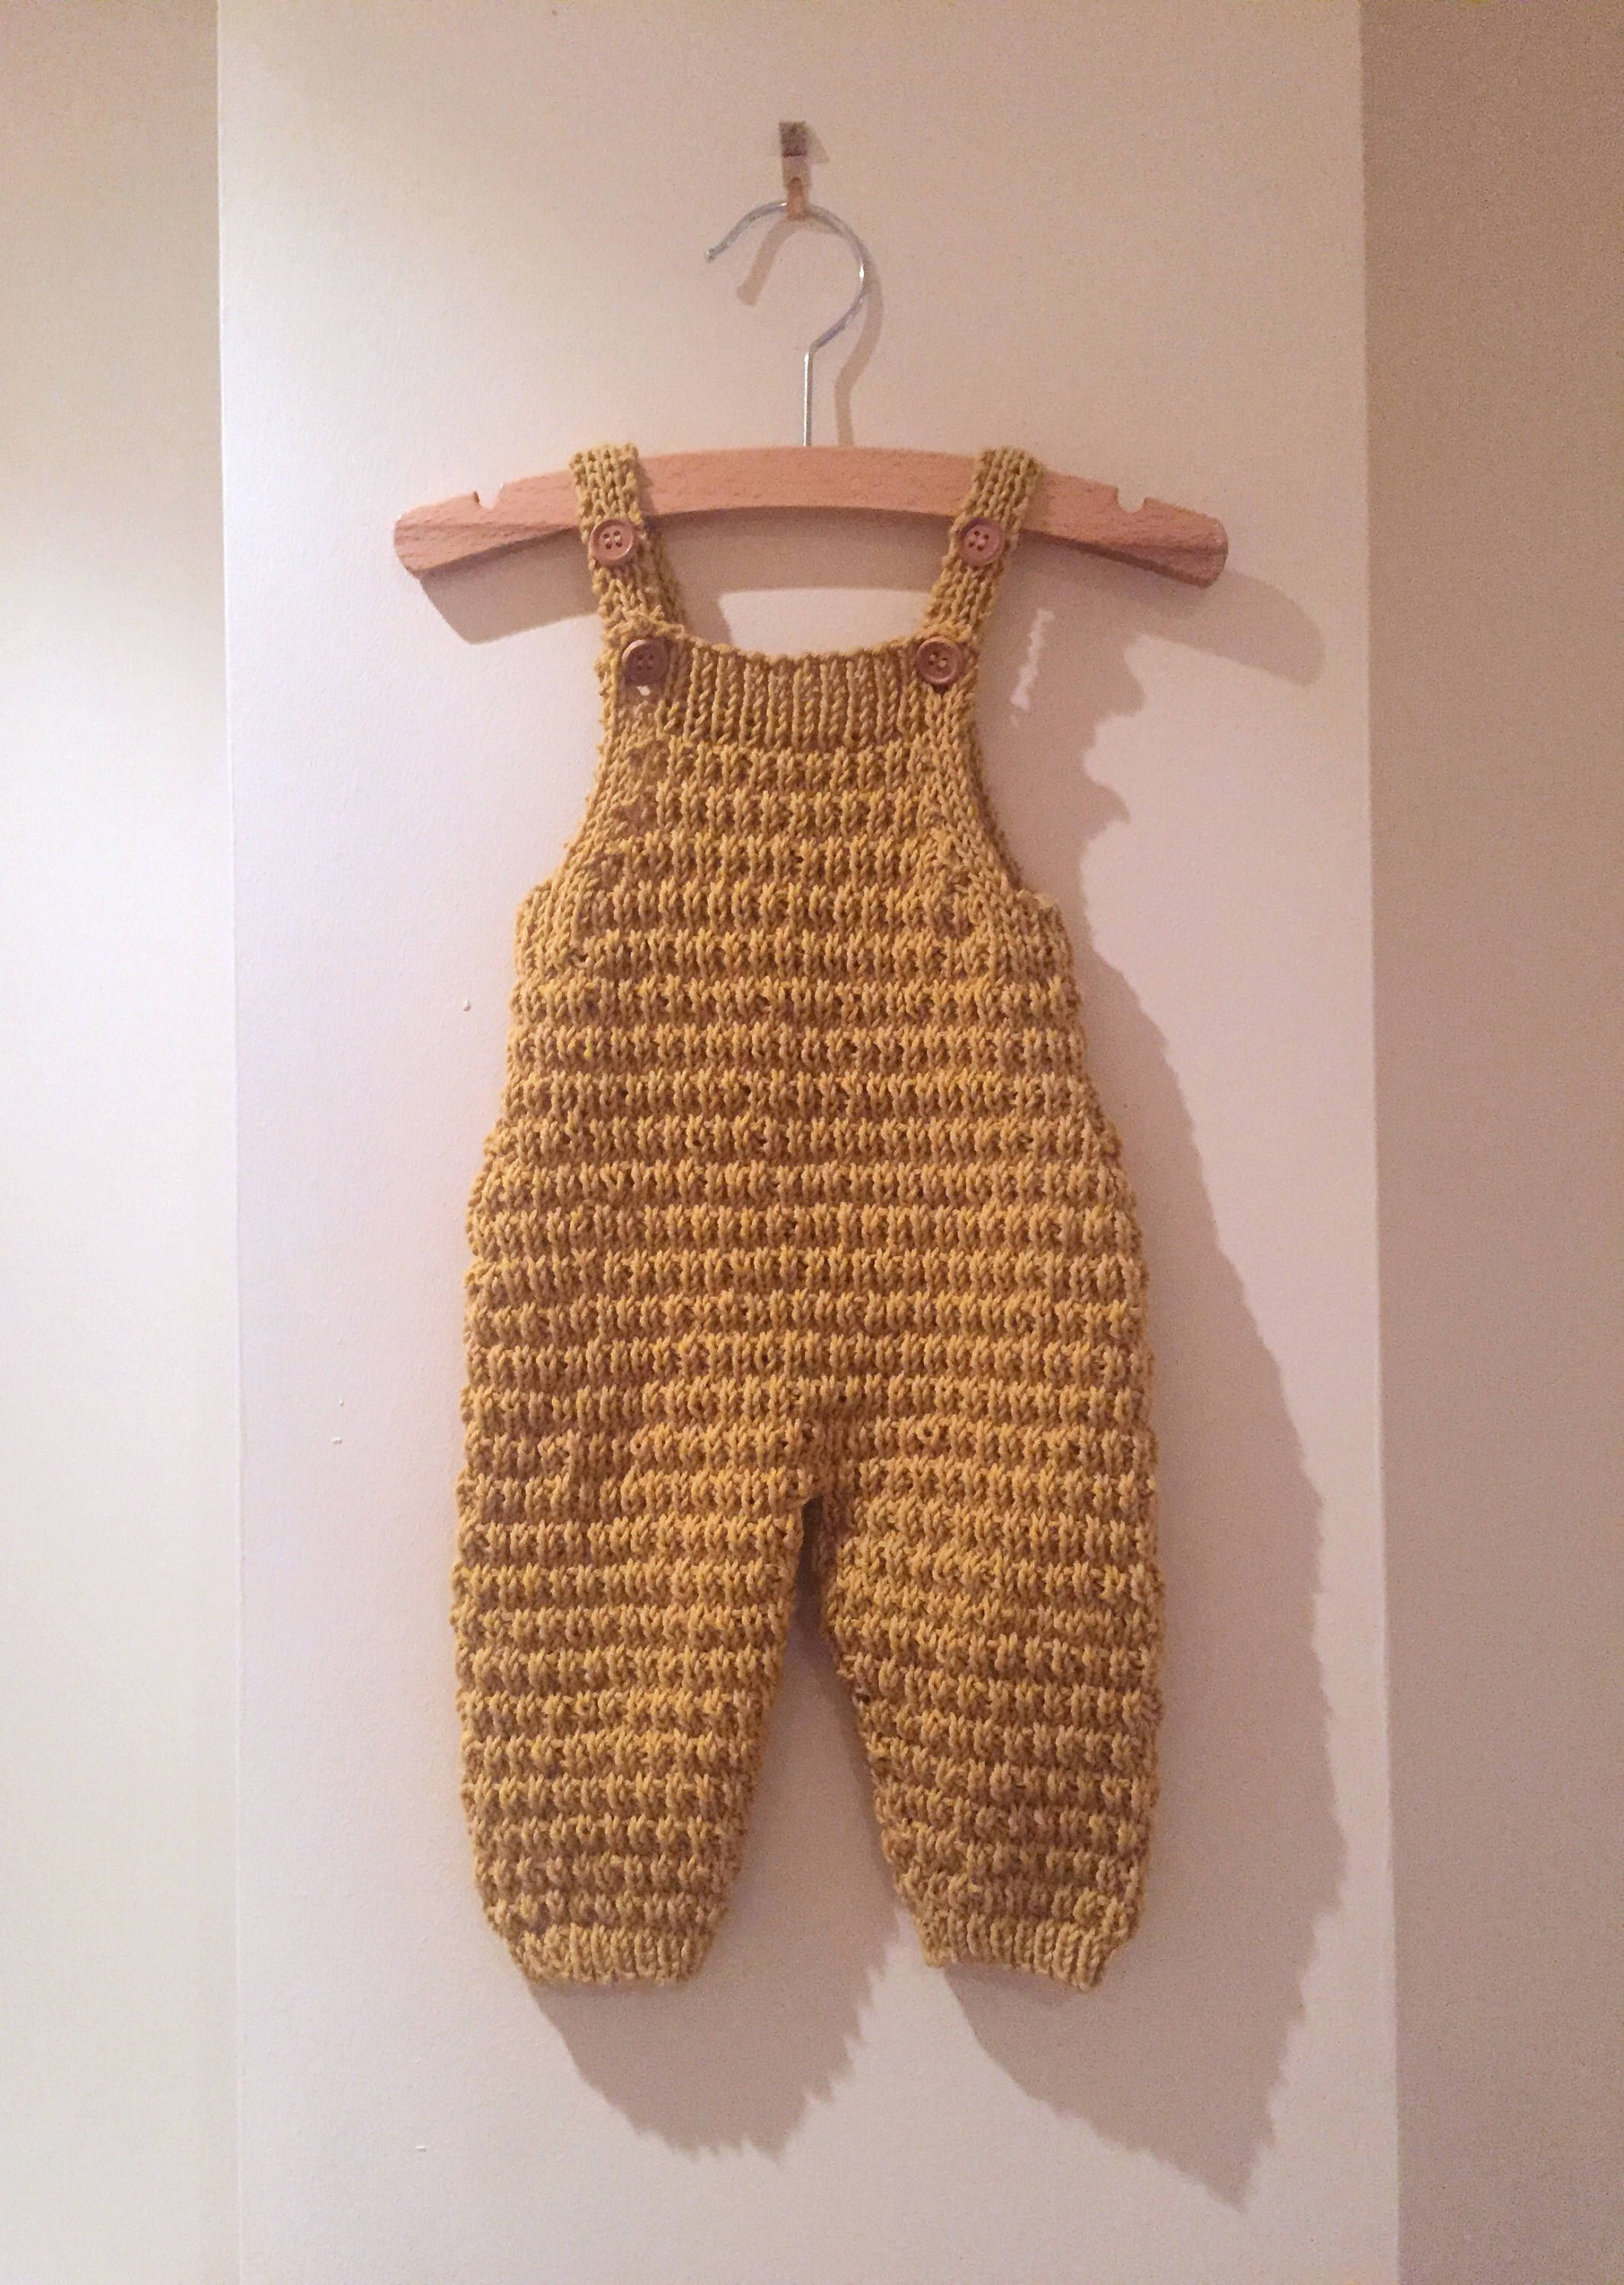 How to master knitting overalls for a newborn 45